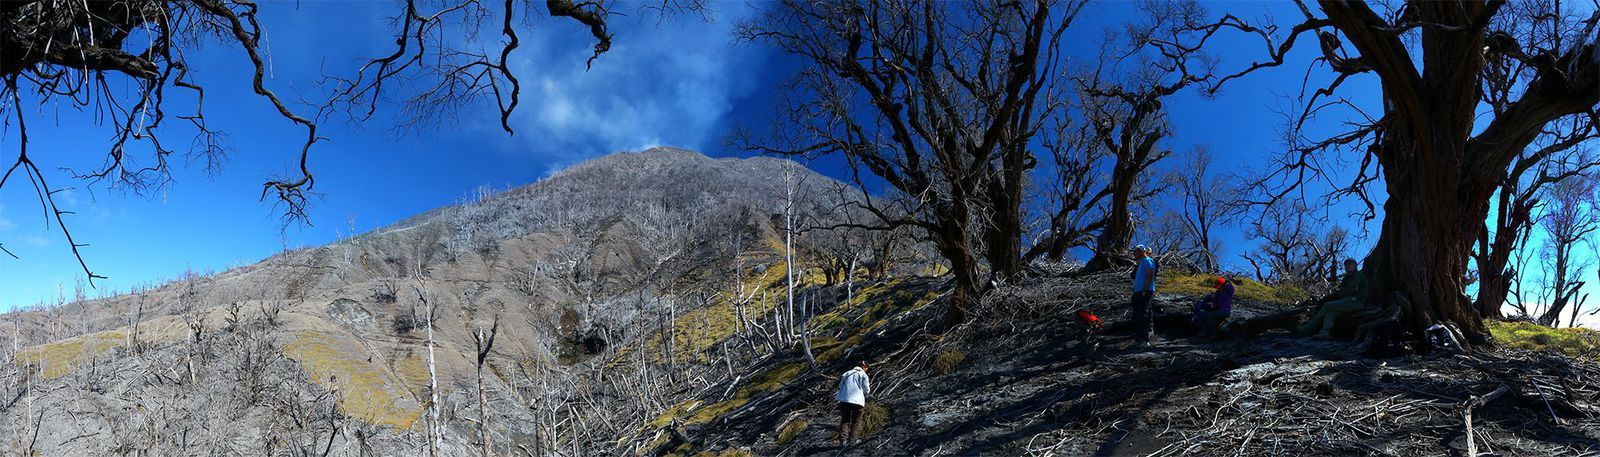 Turrialba - a picture of Tanguy de Saint Cyr demonstrates the desolation of this flank of Turrialba - a click to enlarge - Adventure and Volcanoes travel in December 2014.